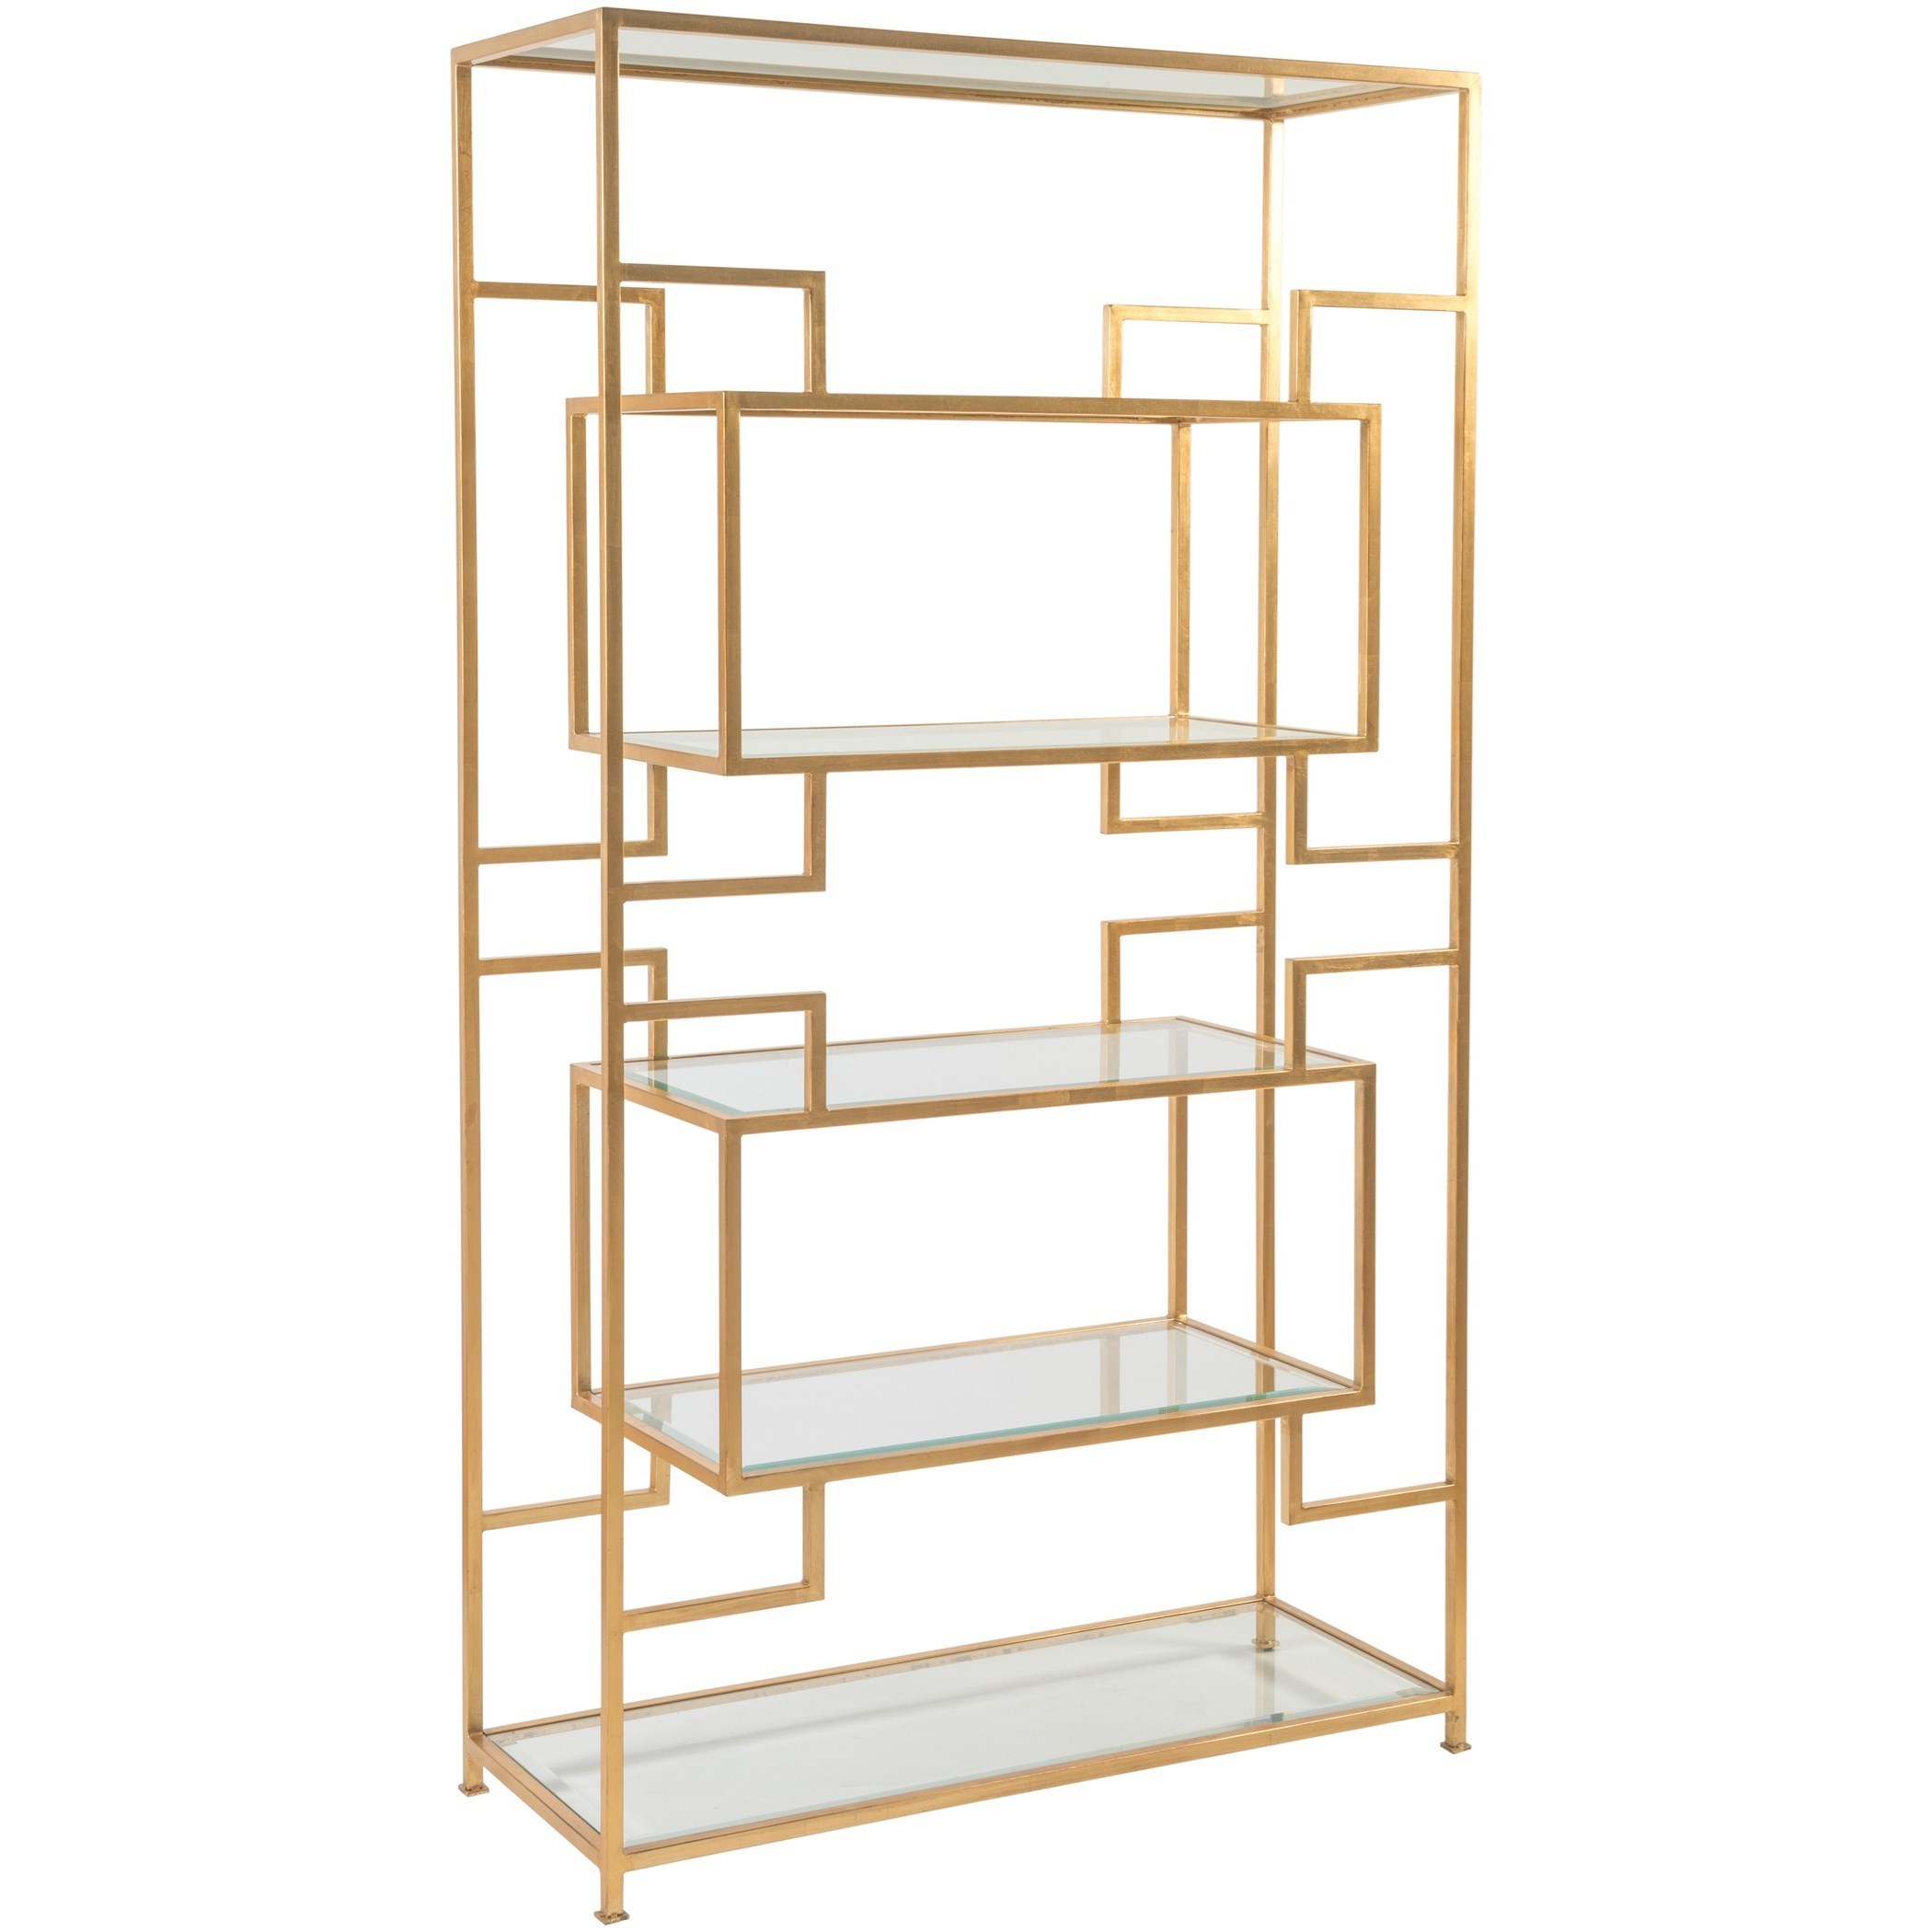 Metal Designs Suspension Etagere by Artistica at Baer's Furniture